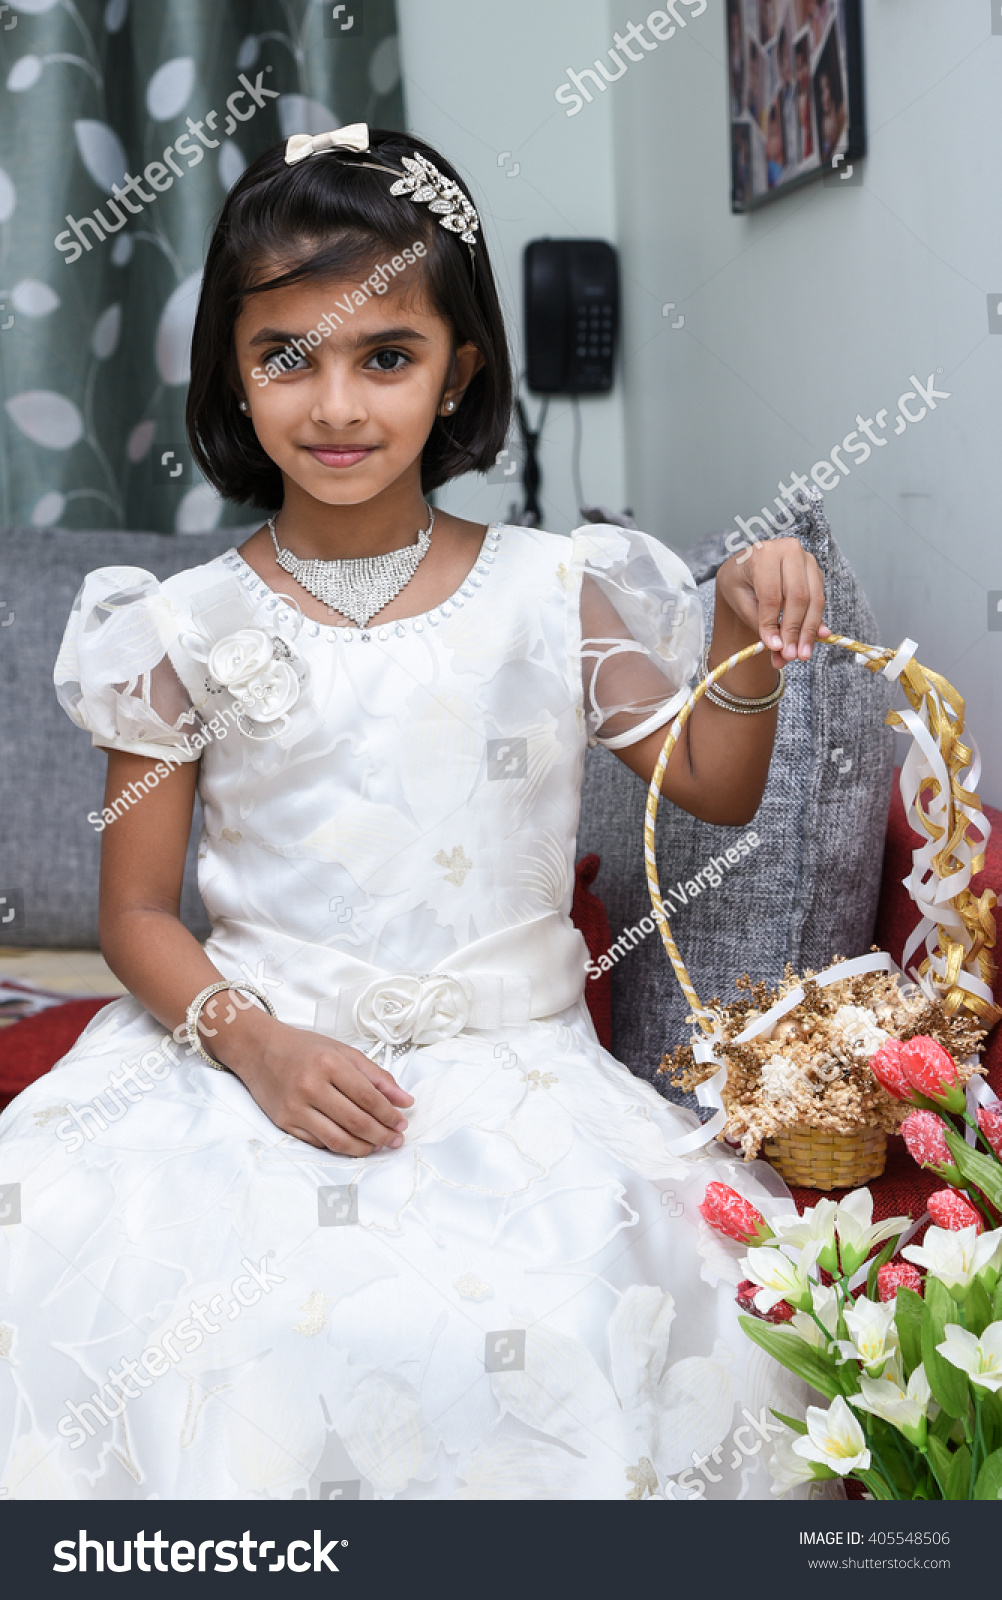 Happy Cheerful Smiling Cute Little Bridesmaid Stock Photo (Royalty ...